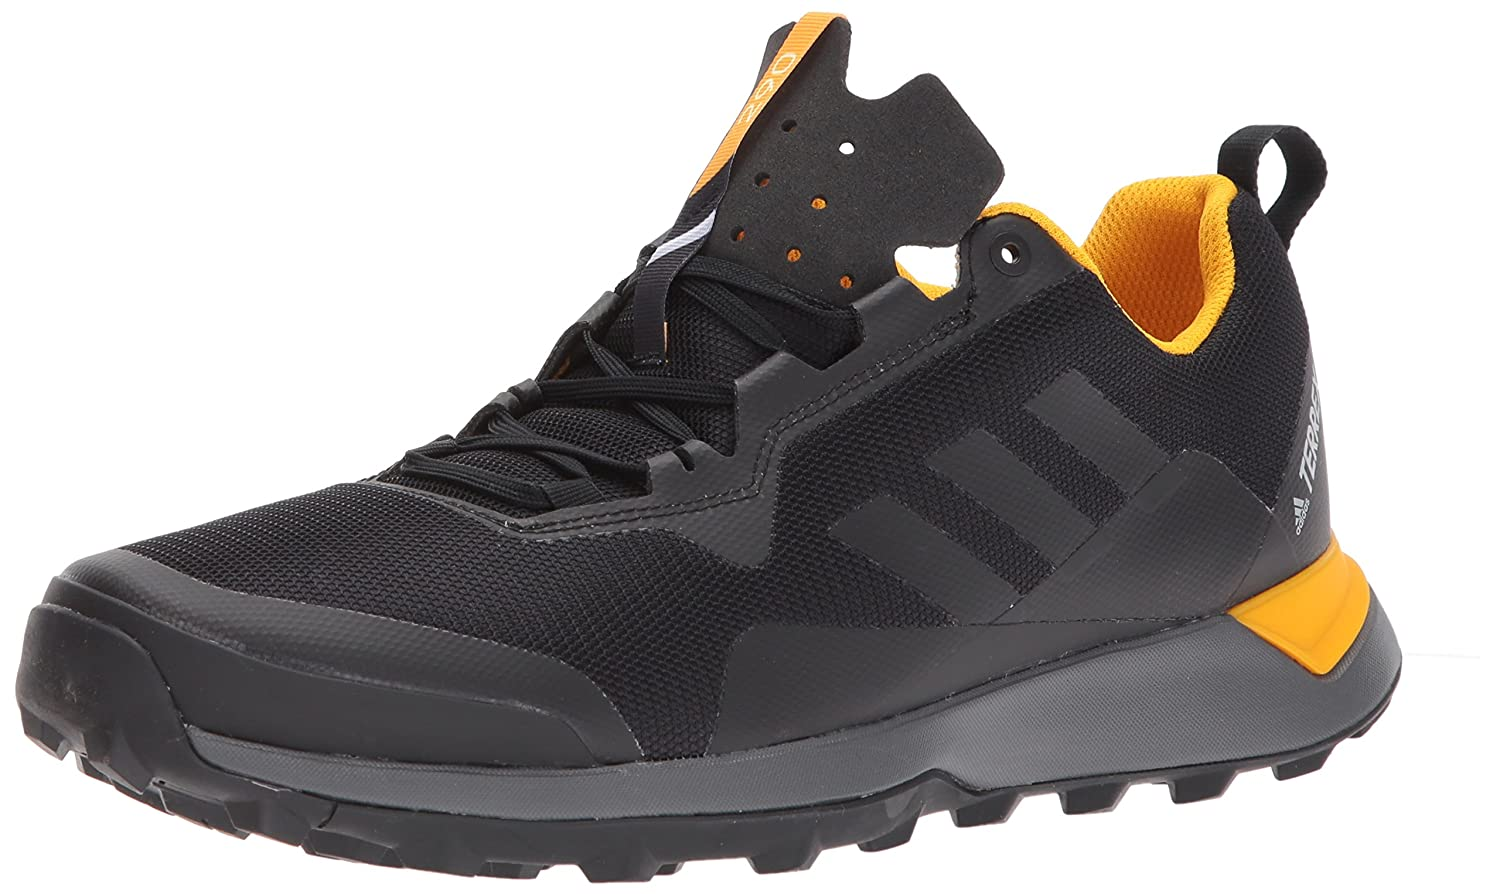 Adidas outdoor Men's Terrex CMTK Walking Schuhe, schwarz Grau Five Grau Two, 6 D US